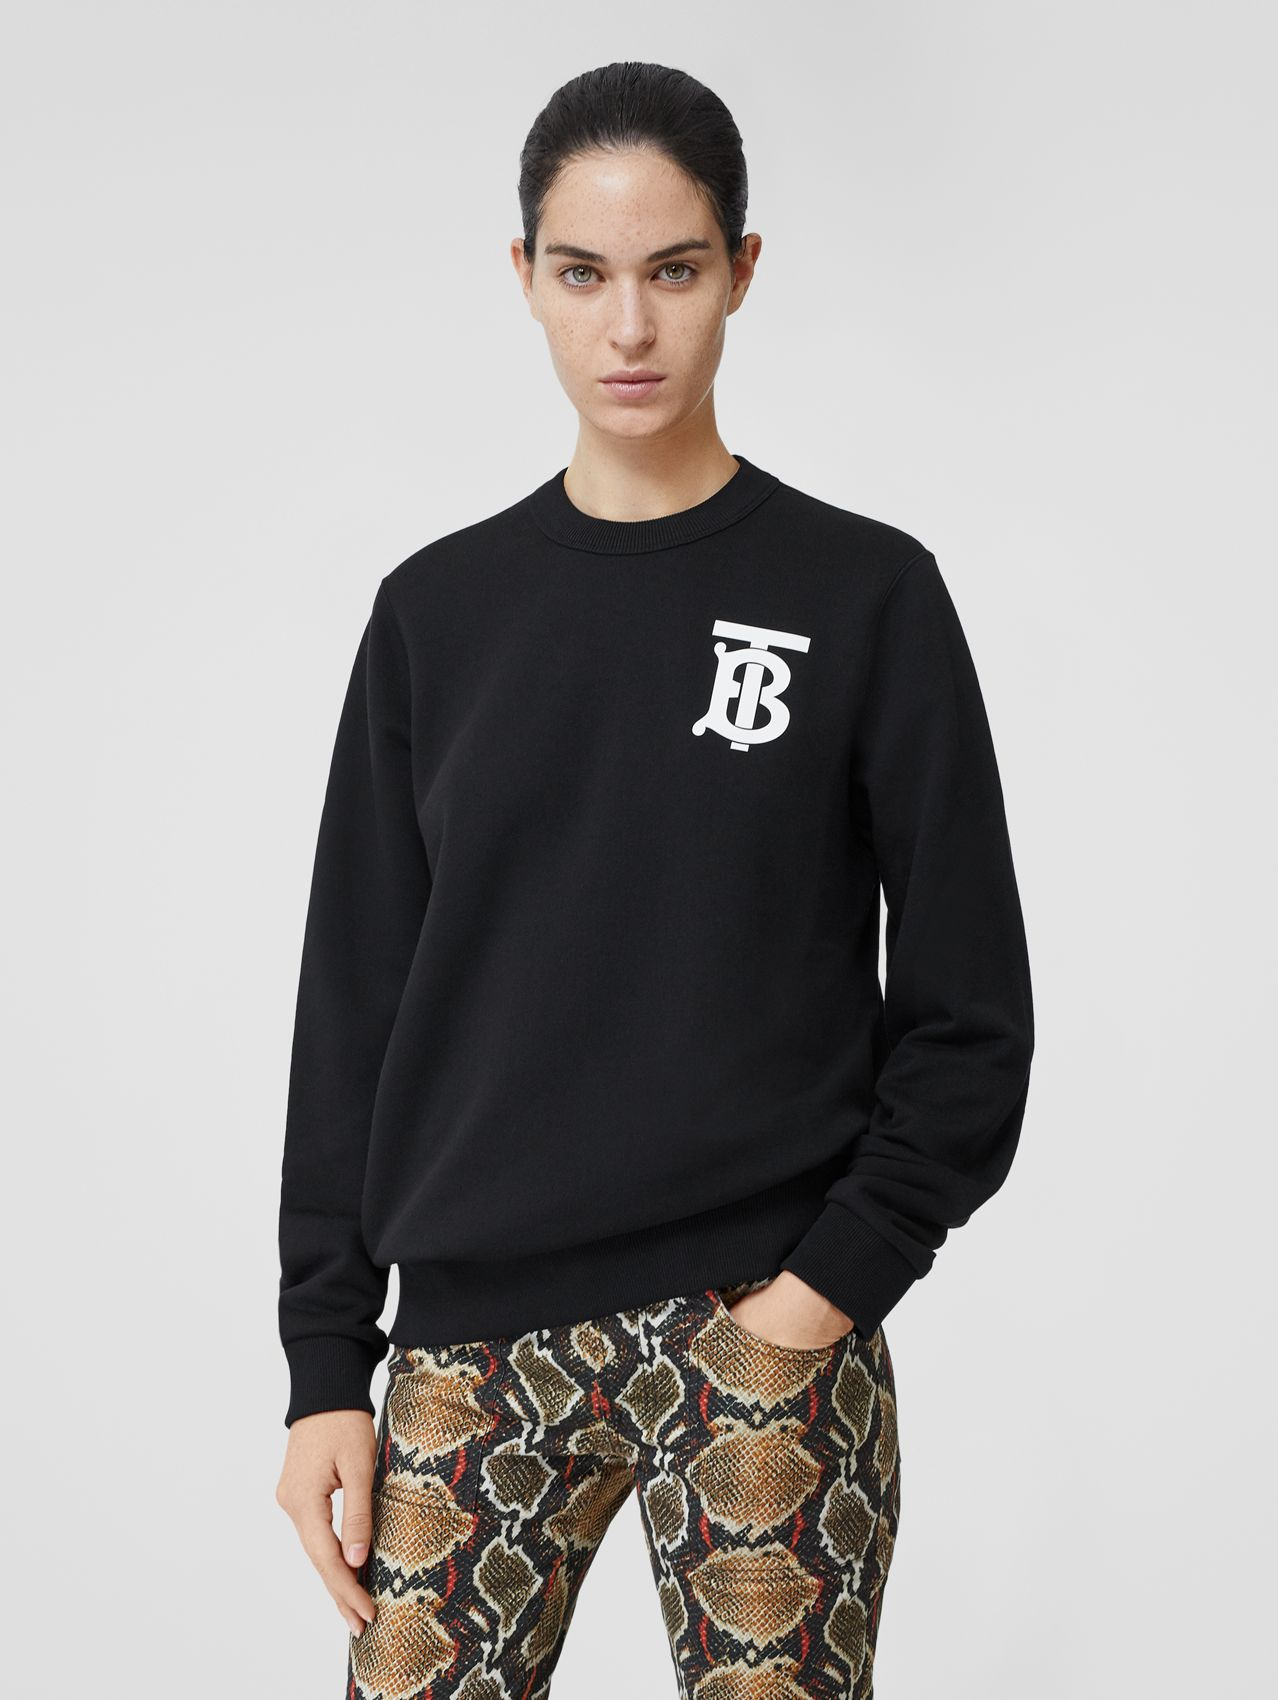 Monogram Motif Cotton Sweatshirt (Black)